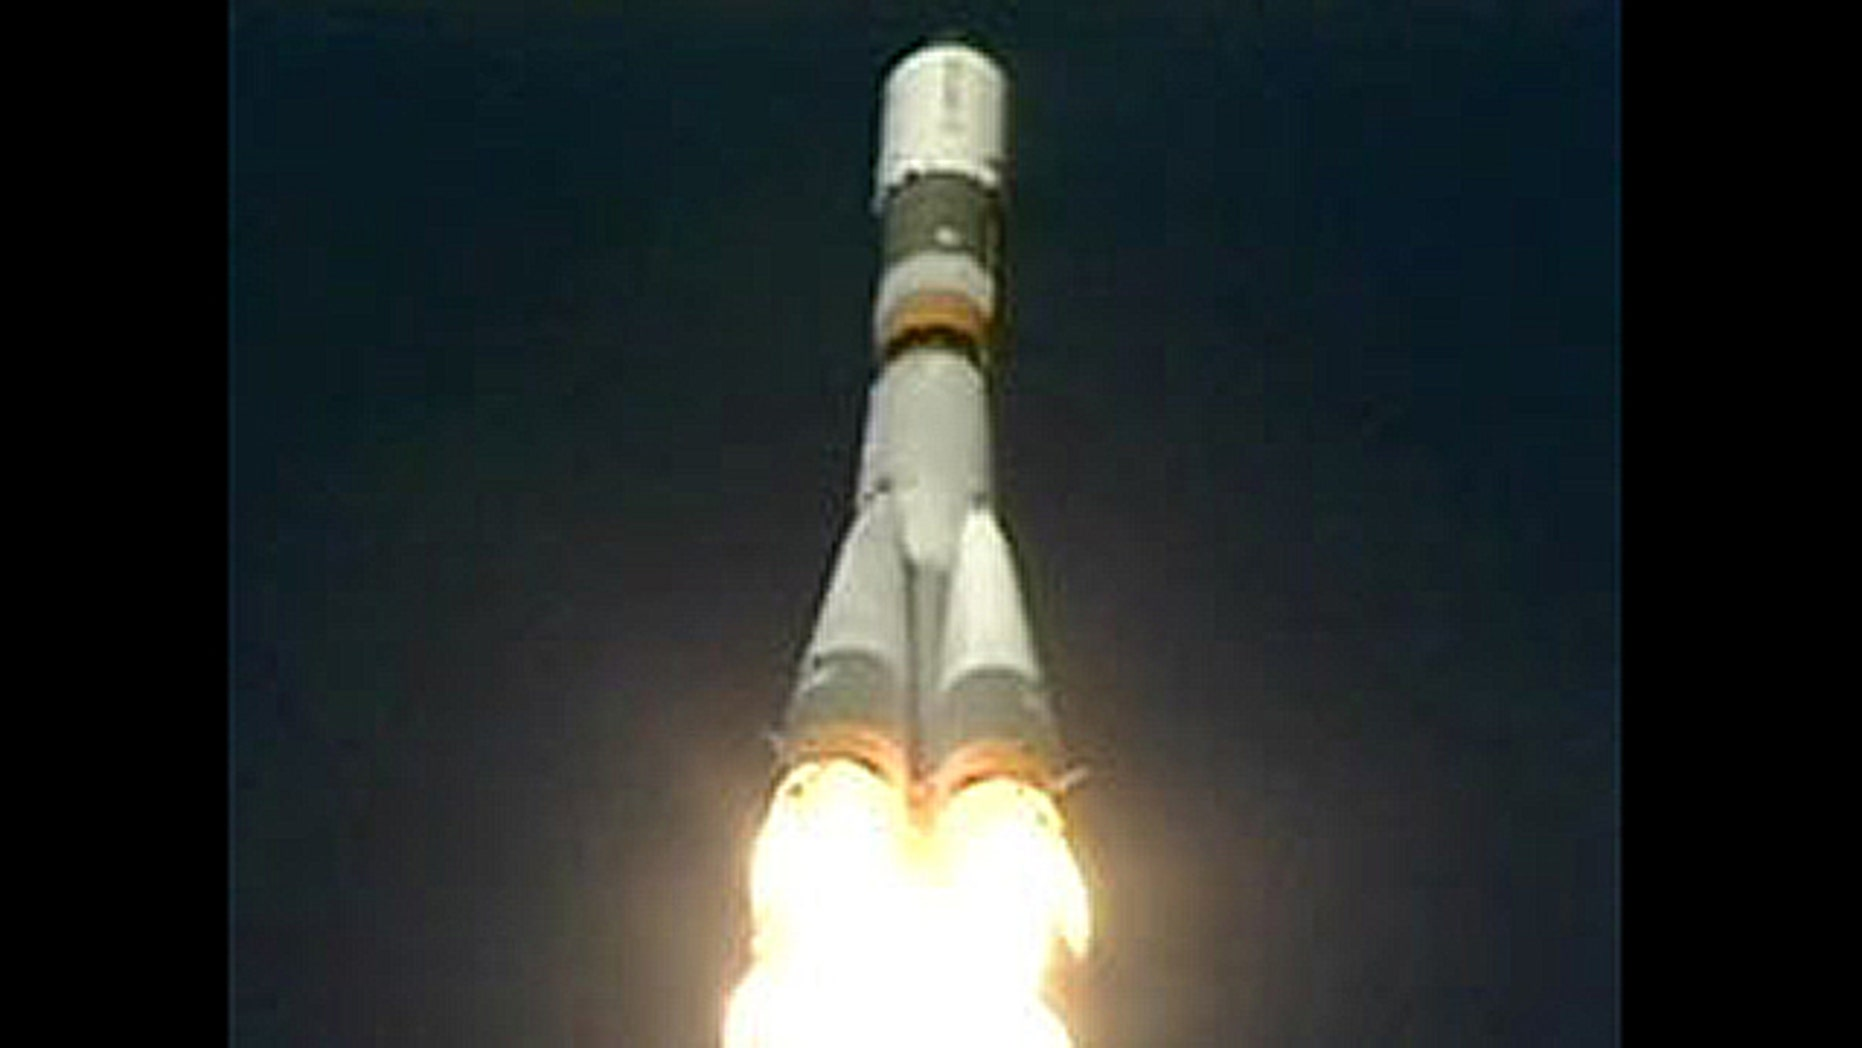 Oct. 30, 2011: The unpiloted ISS Progress 45 cargo craft launches from the Baikonur Cosmodrome in Kazakhstan.